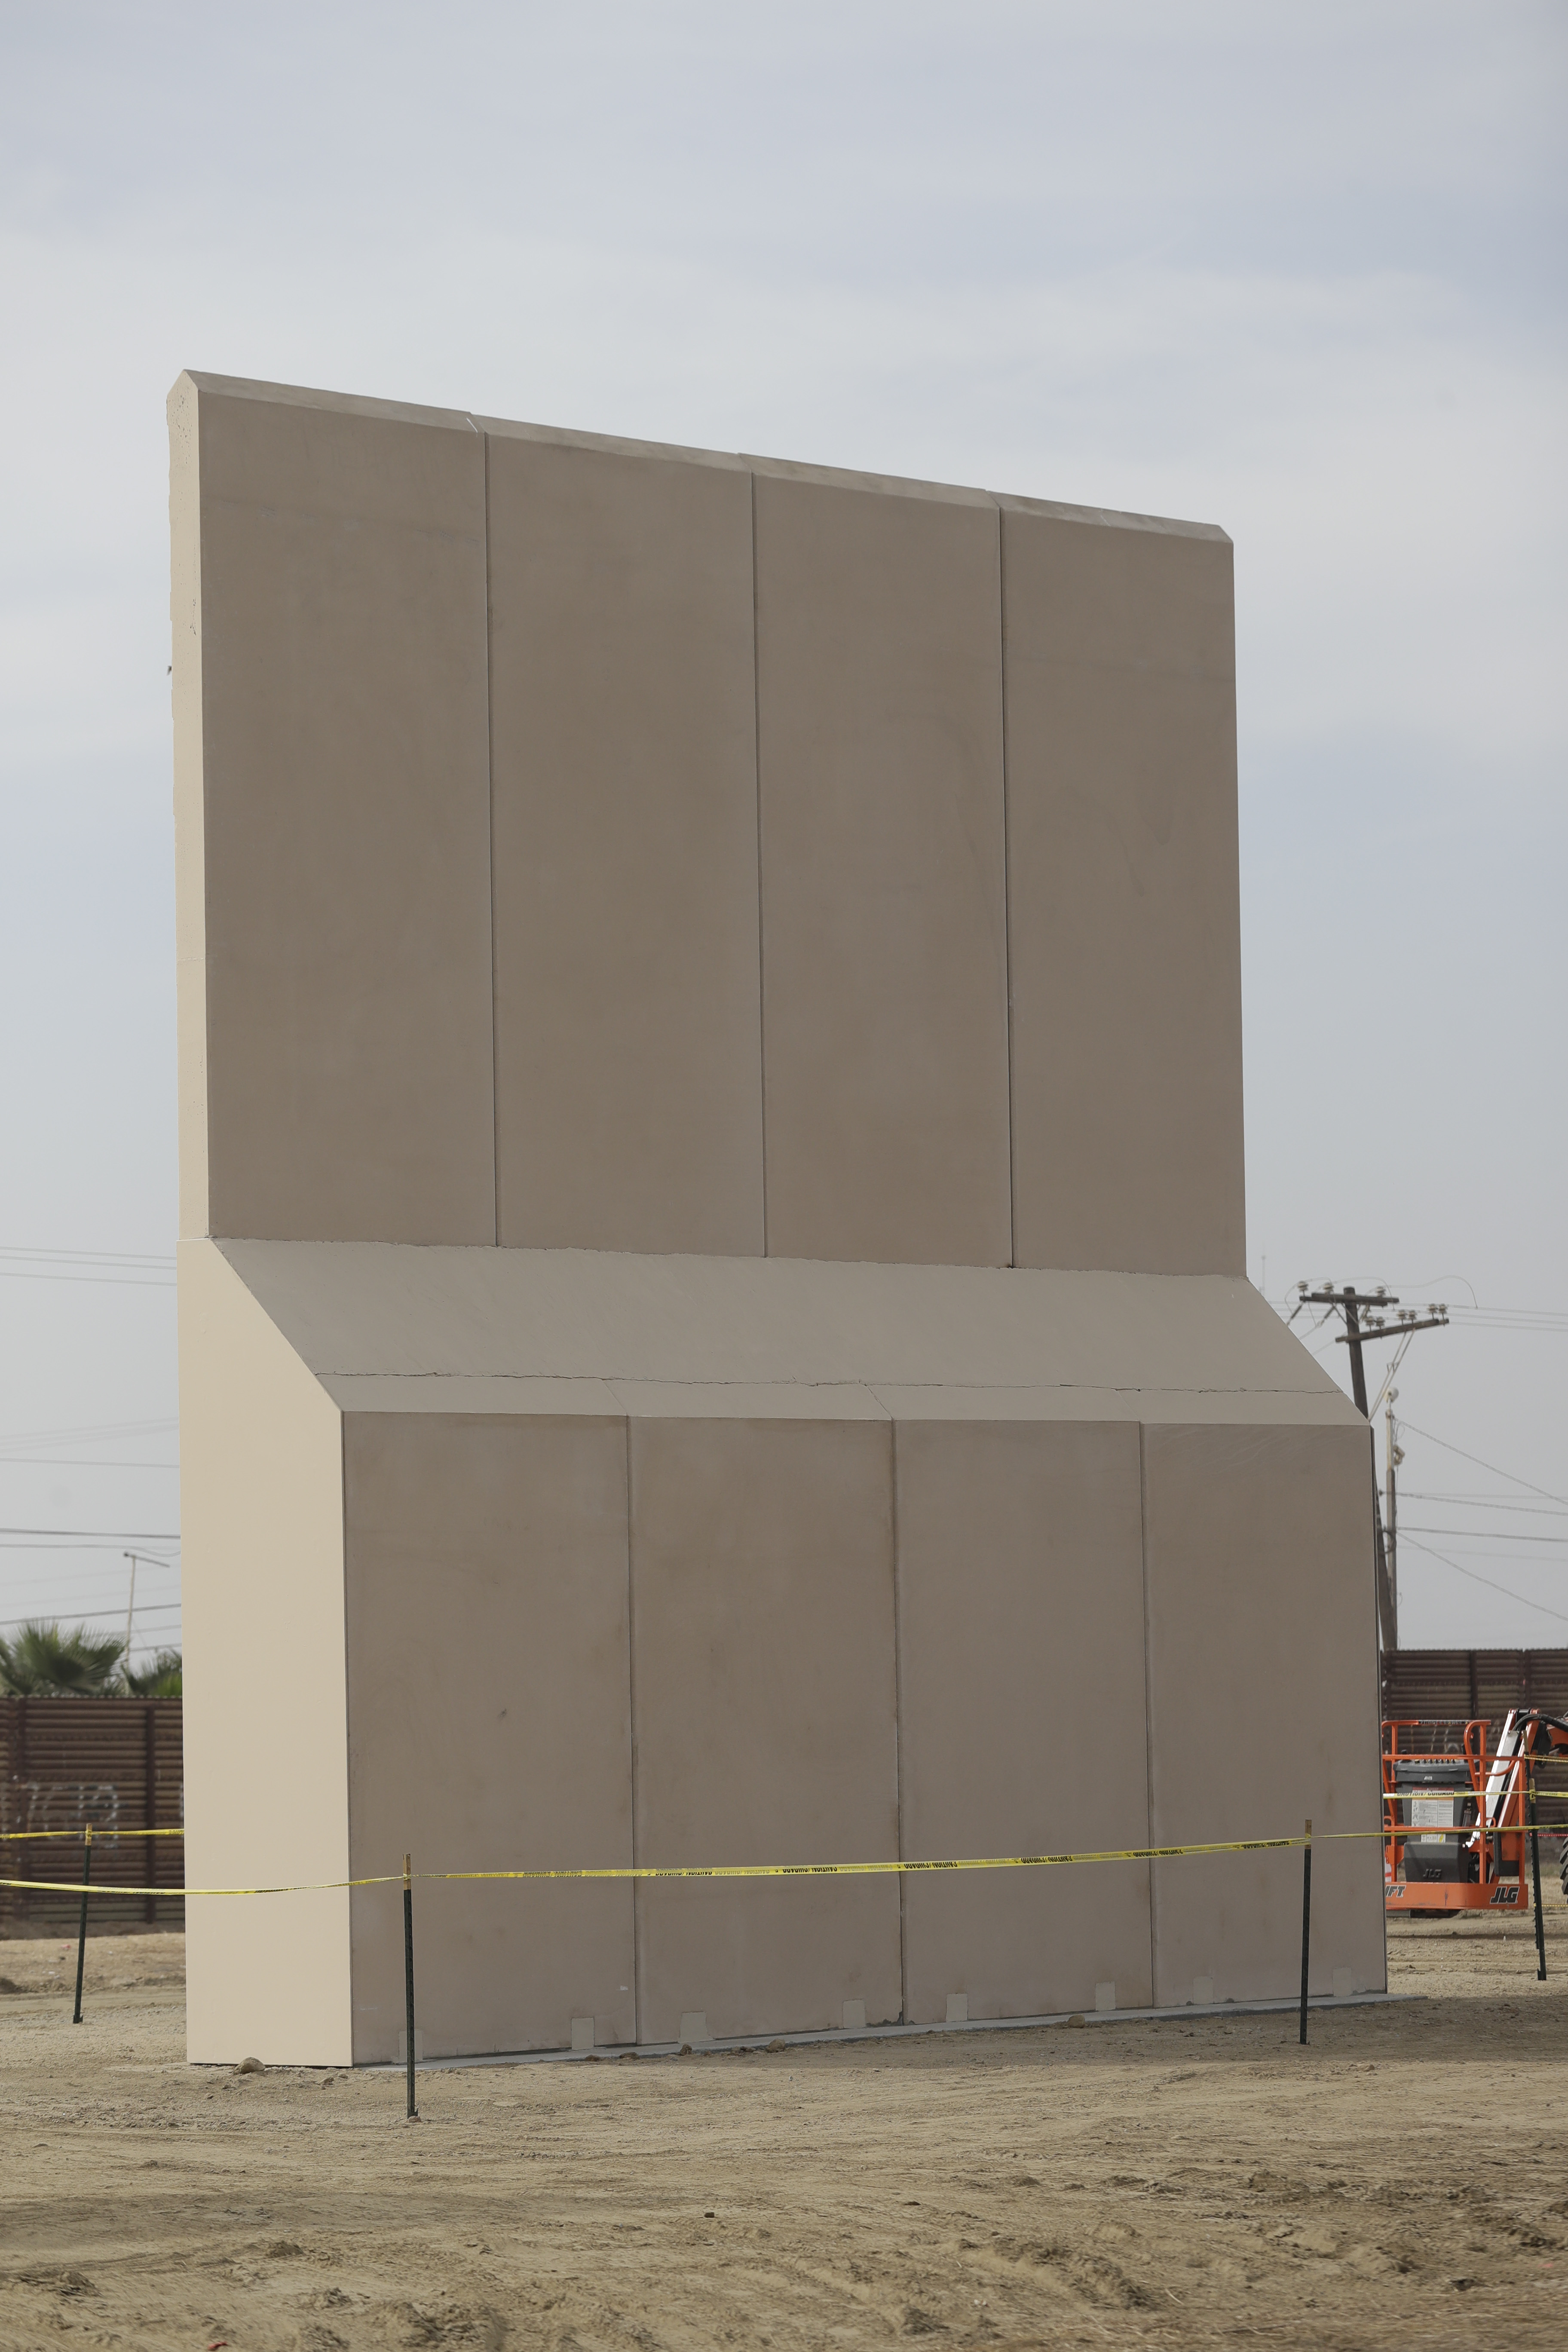 Cadell Construction Company, based in Montgomery, Ala., offered a tan concrete wall at a contract value of $344,000. It's thick at the bottom and narrows considerably toward the pointed top. (Gregory Bull/AP)